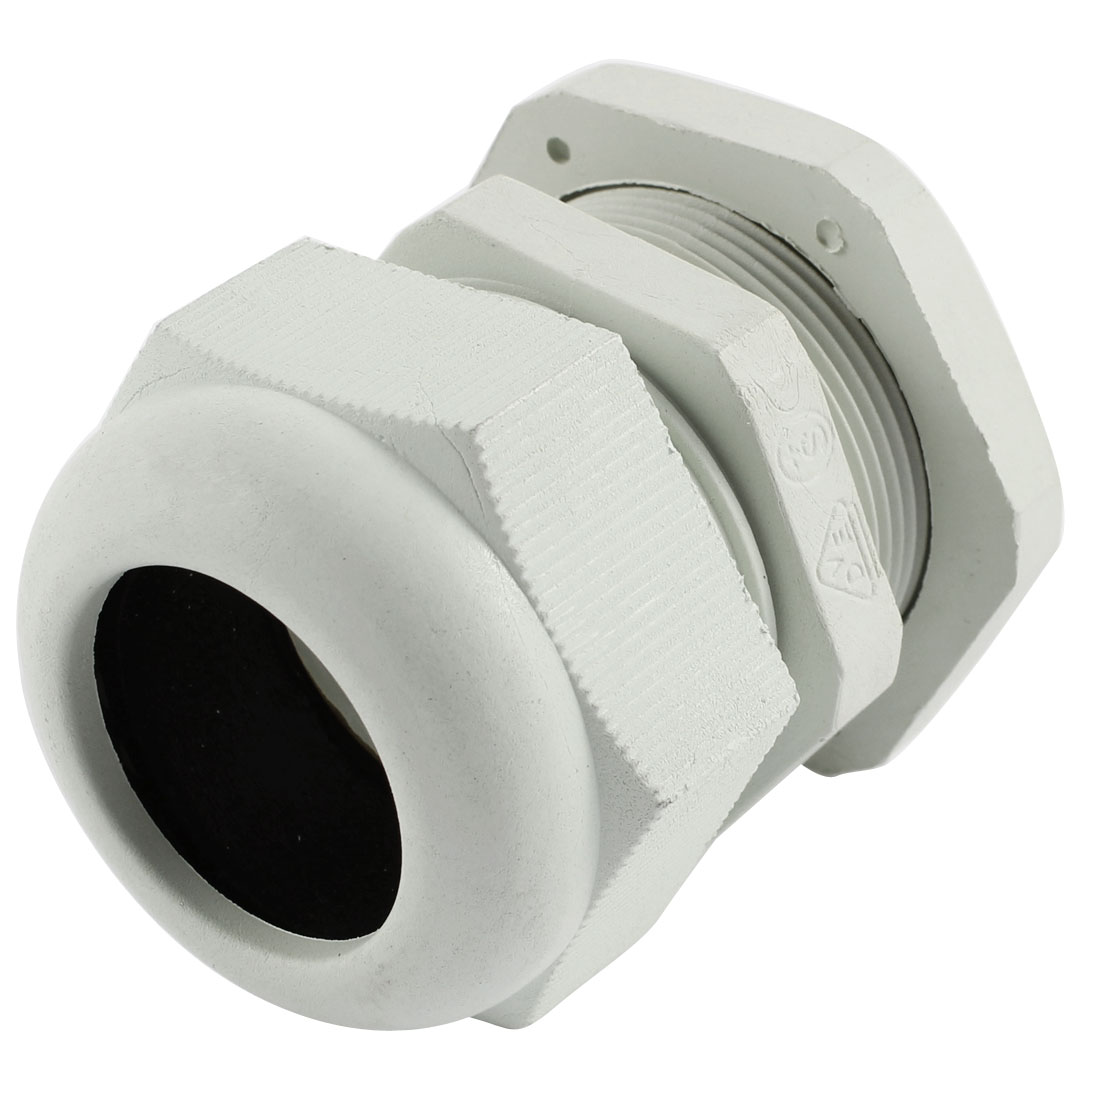 White Plastic PG29 18-25mm Wire Connector Waterproof Cable Gland